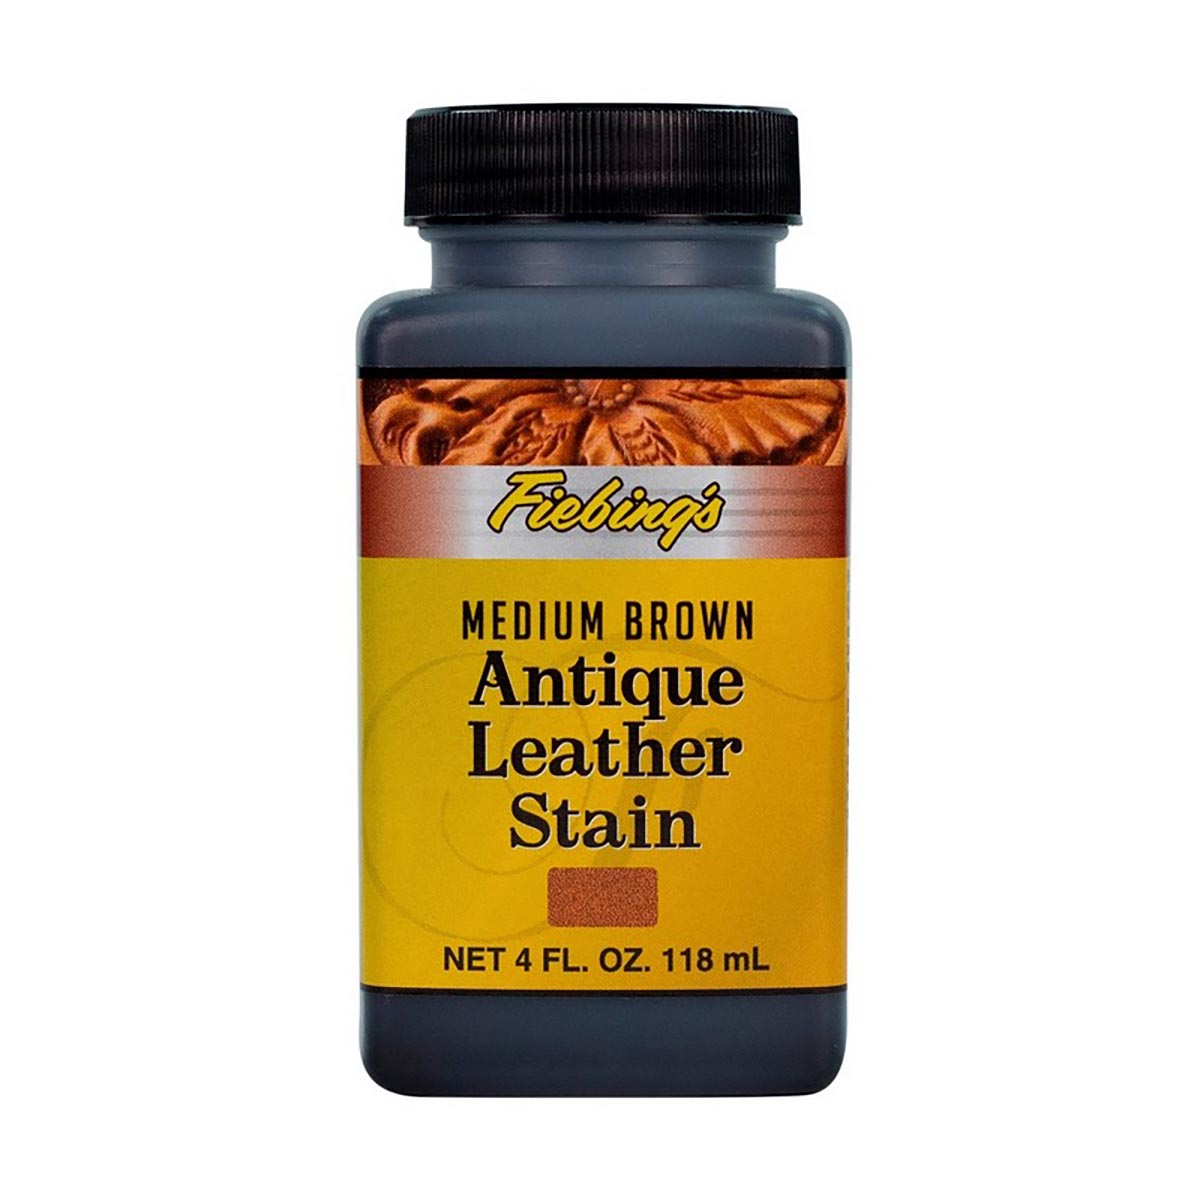 FIEBING Antique Leather Stain